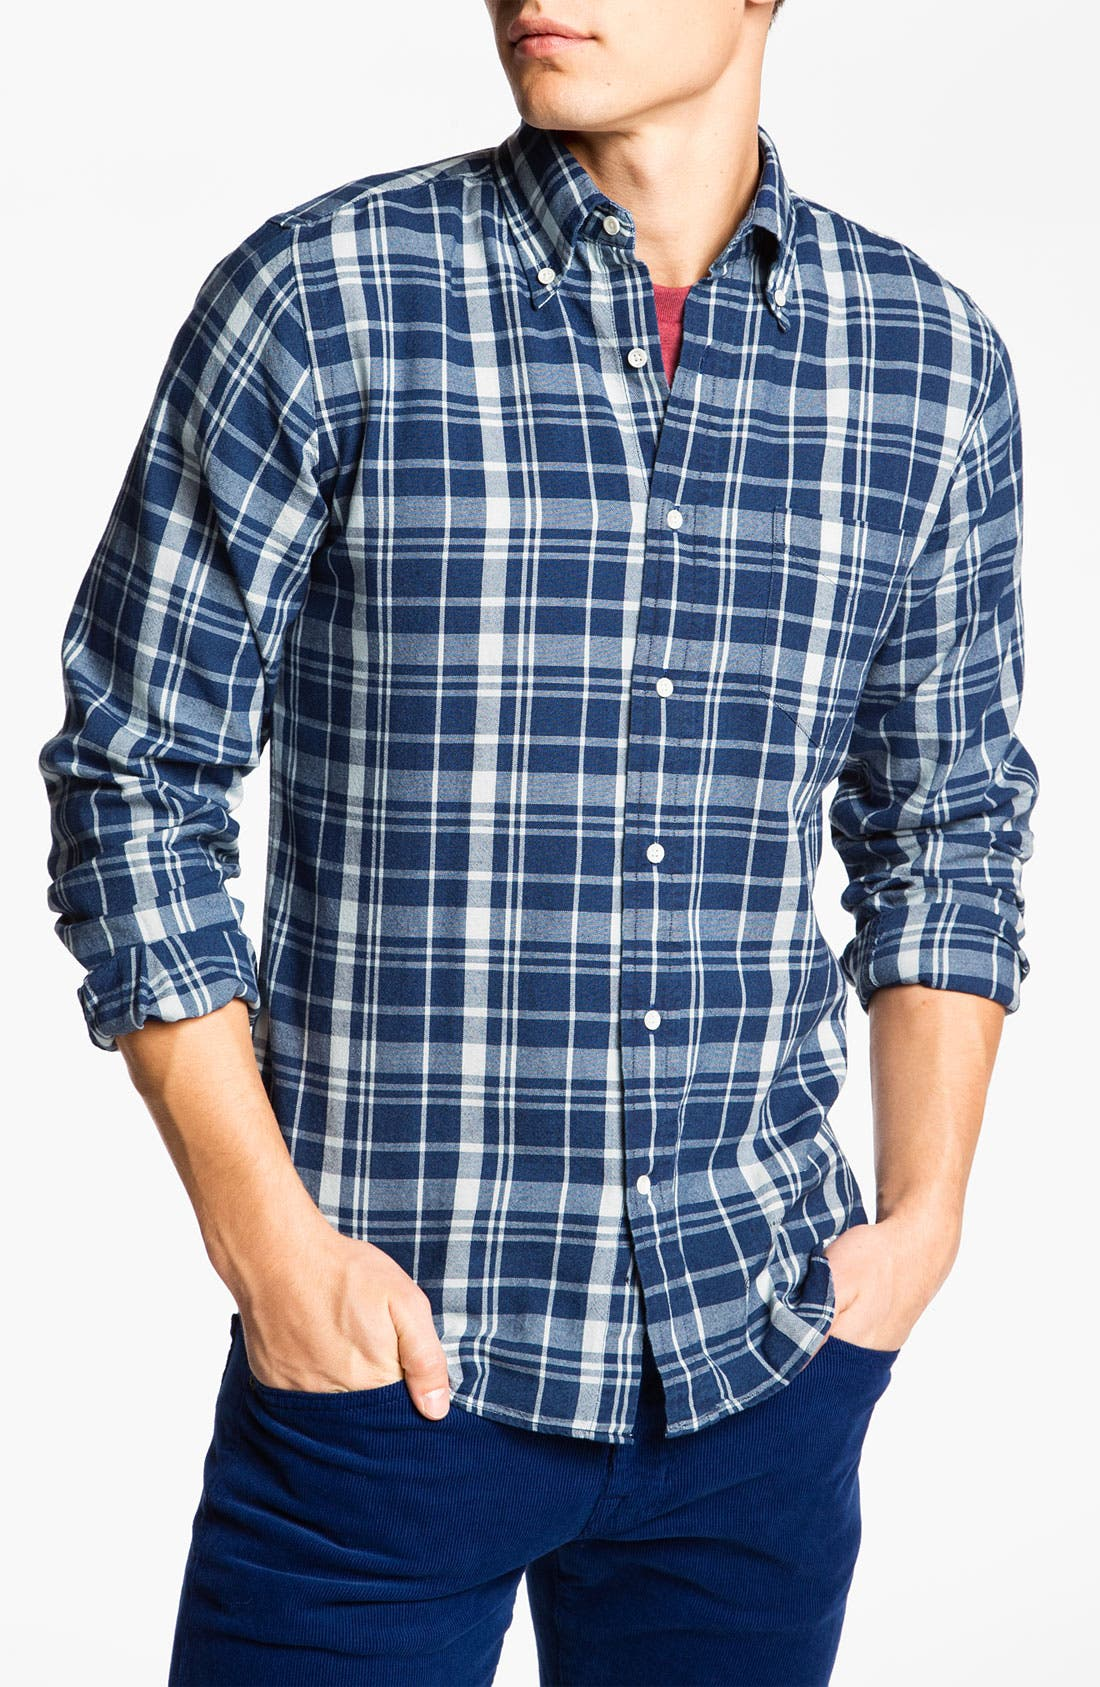 Alternate Image 1 Selected - Gant Rugger 'The Hugger' Check Woven Shirt